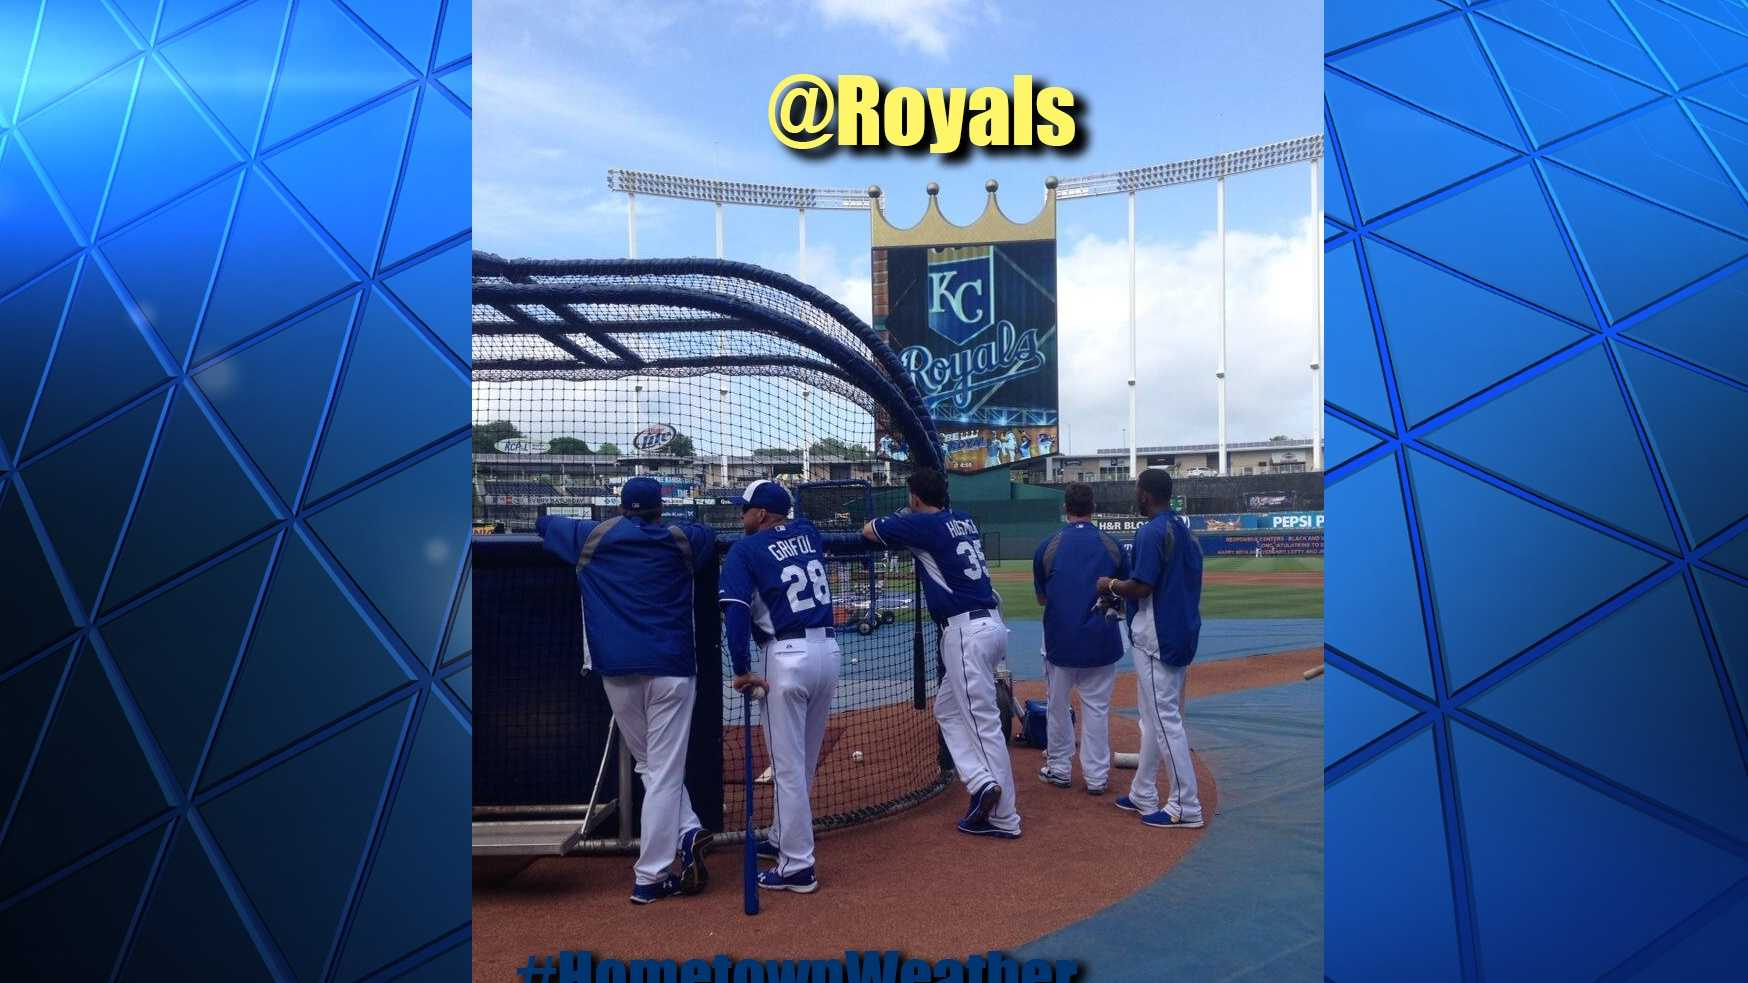 KMBC 9 News meteorologist Nick Bender will join fans in the parking lot for pregame festivities.  Royals host the Tigers tonight at Kauffman Stadium.